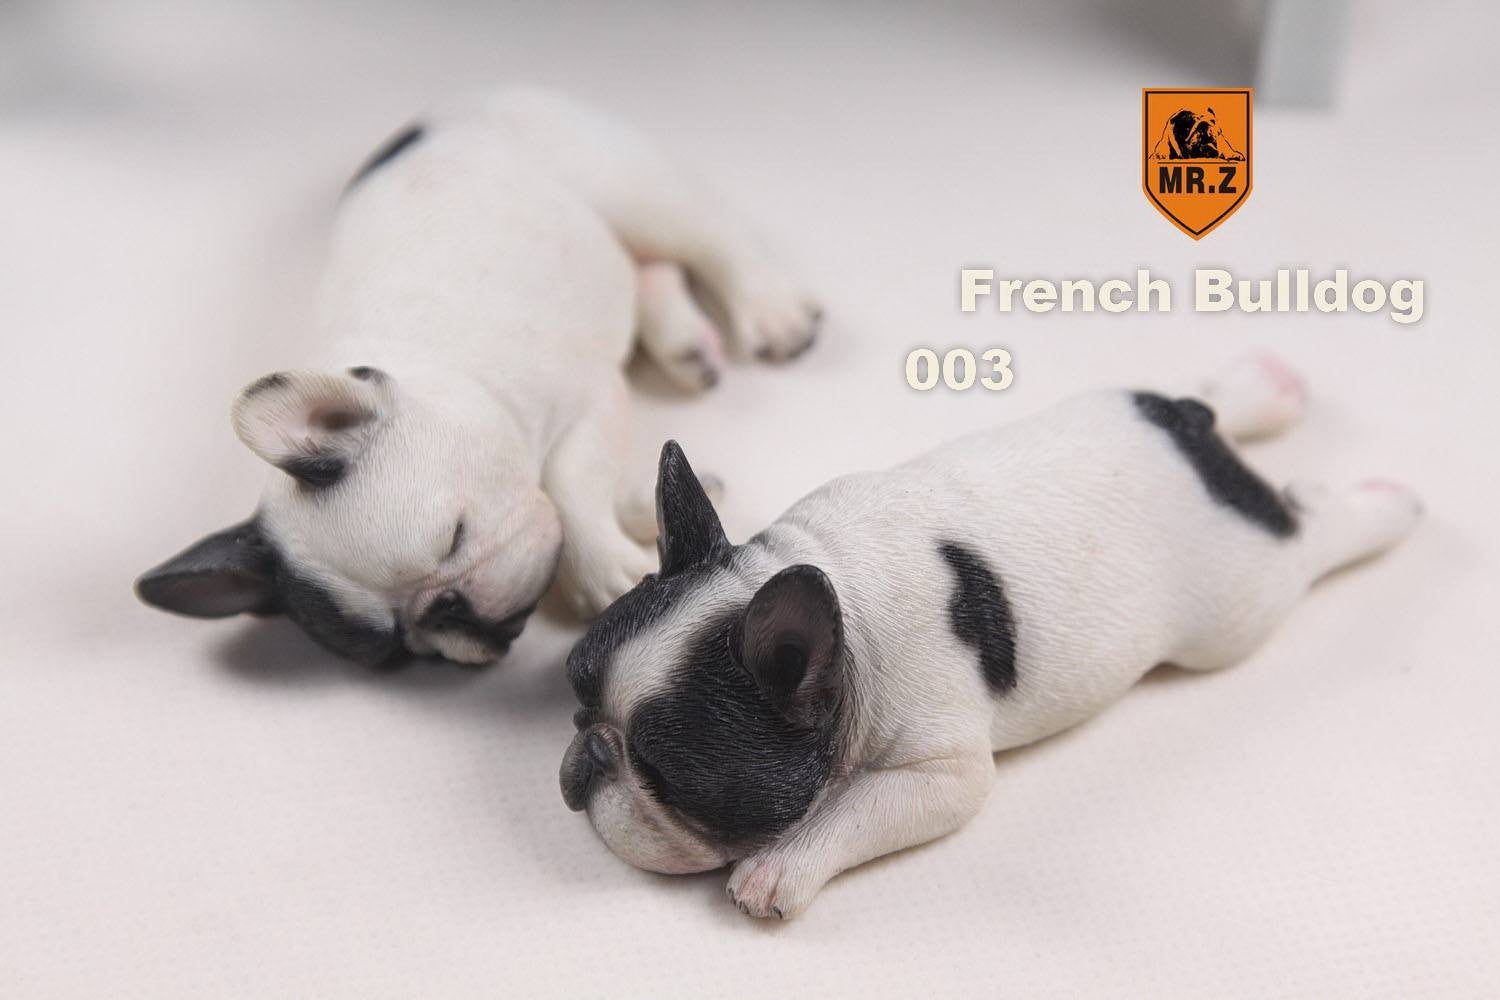 MR.Z - Real Animal Series No.9 - 1/6th Scale French Bulldog (Sleep Mode) 001-005 - Marvelous Toys - 15